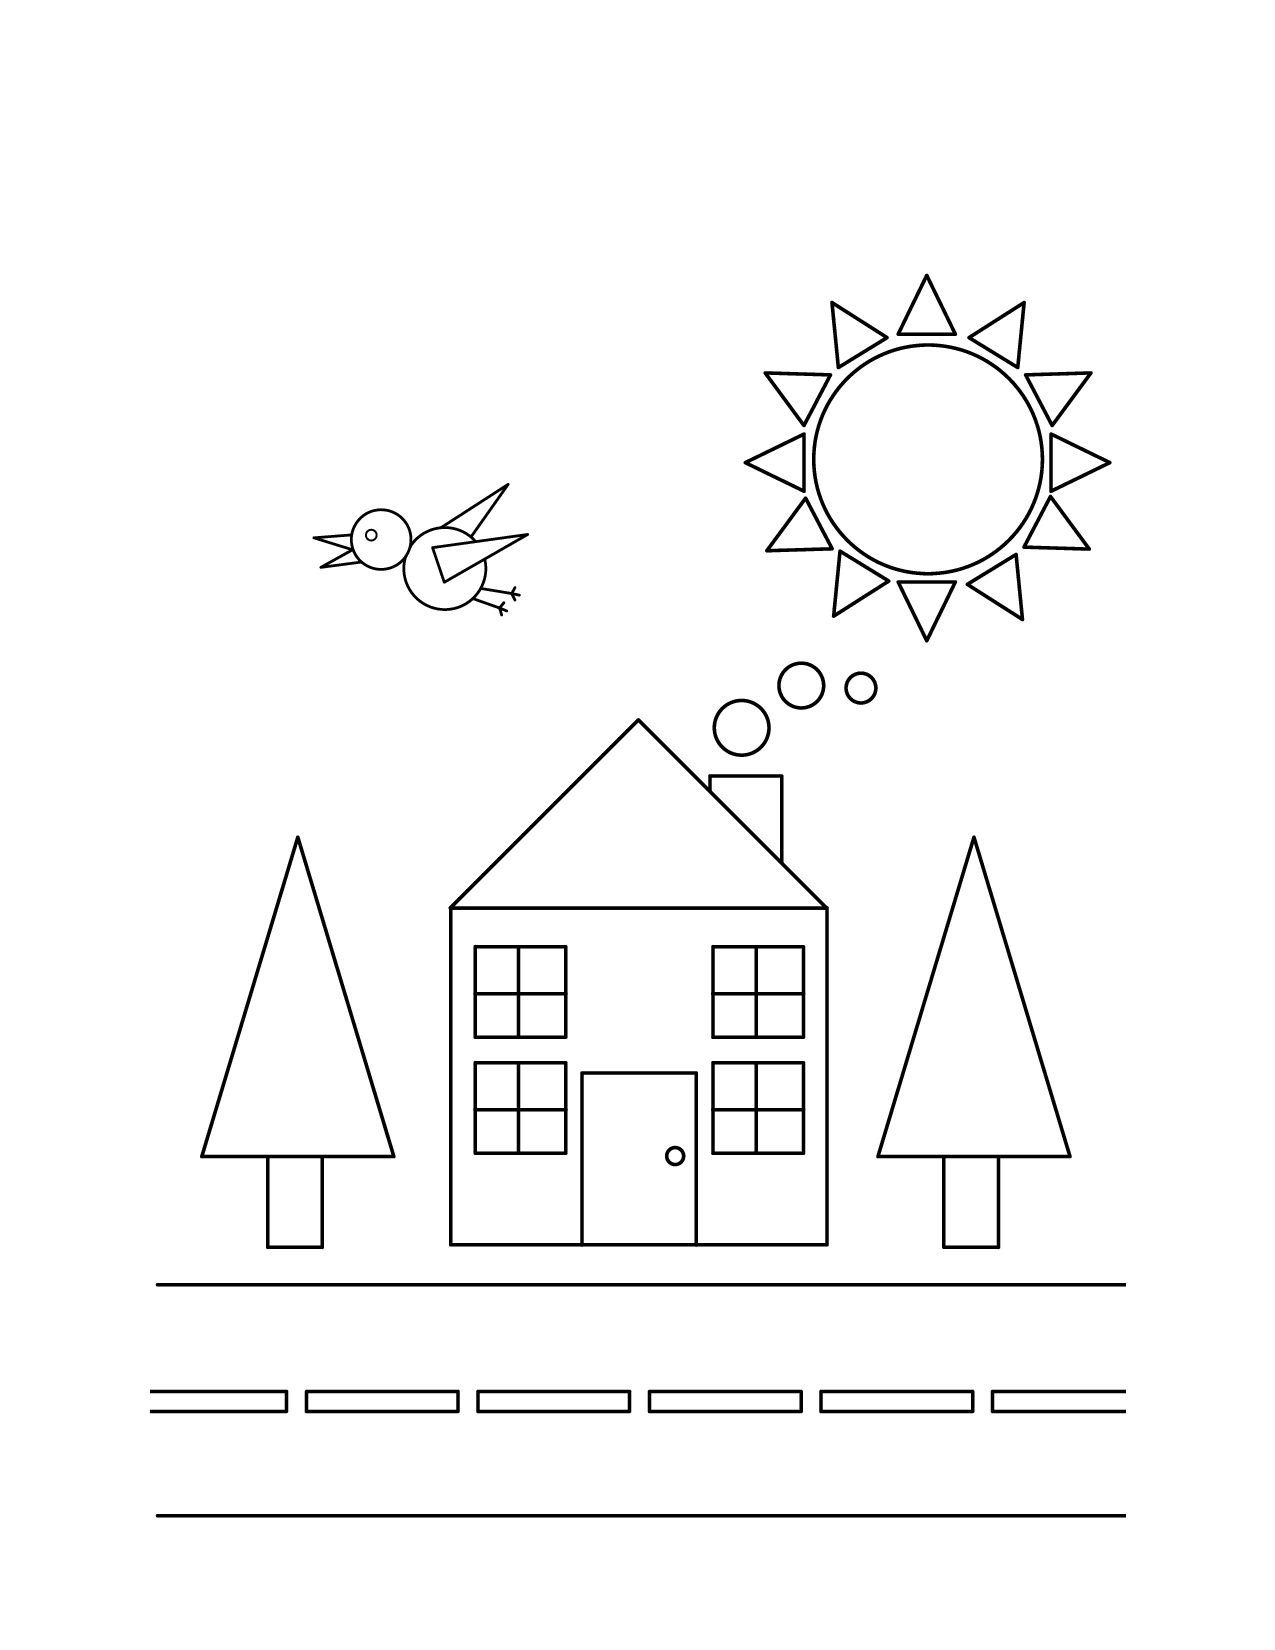 Simple Shapes Coloring Pages Printable